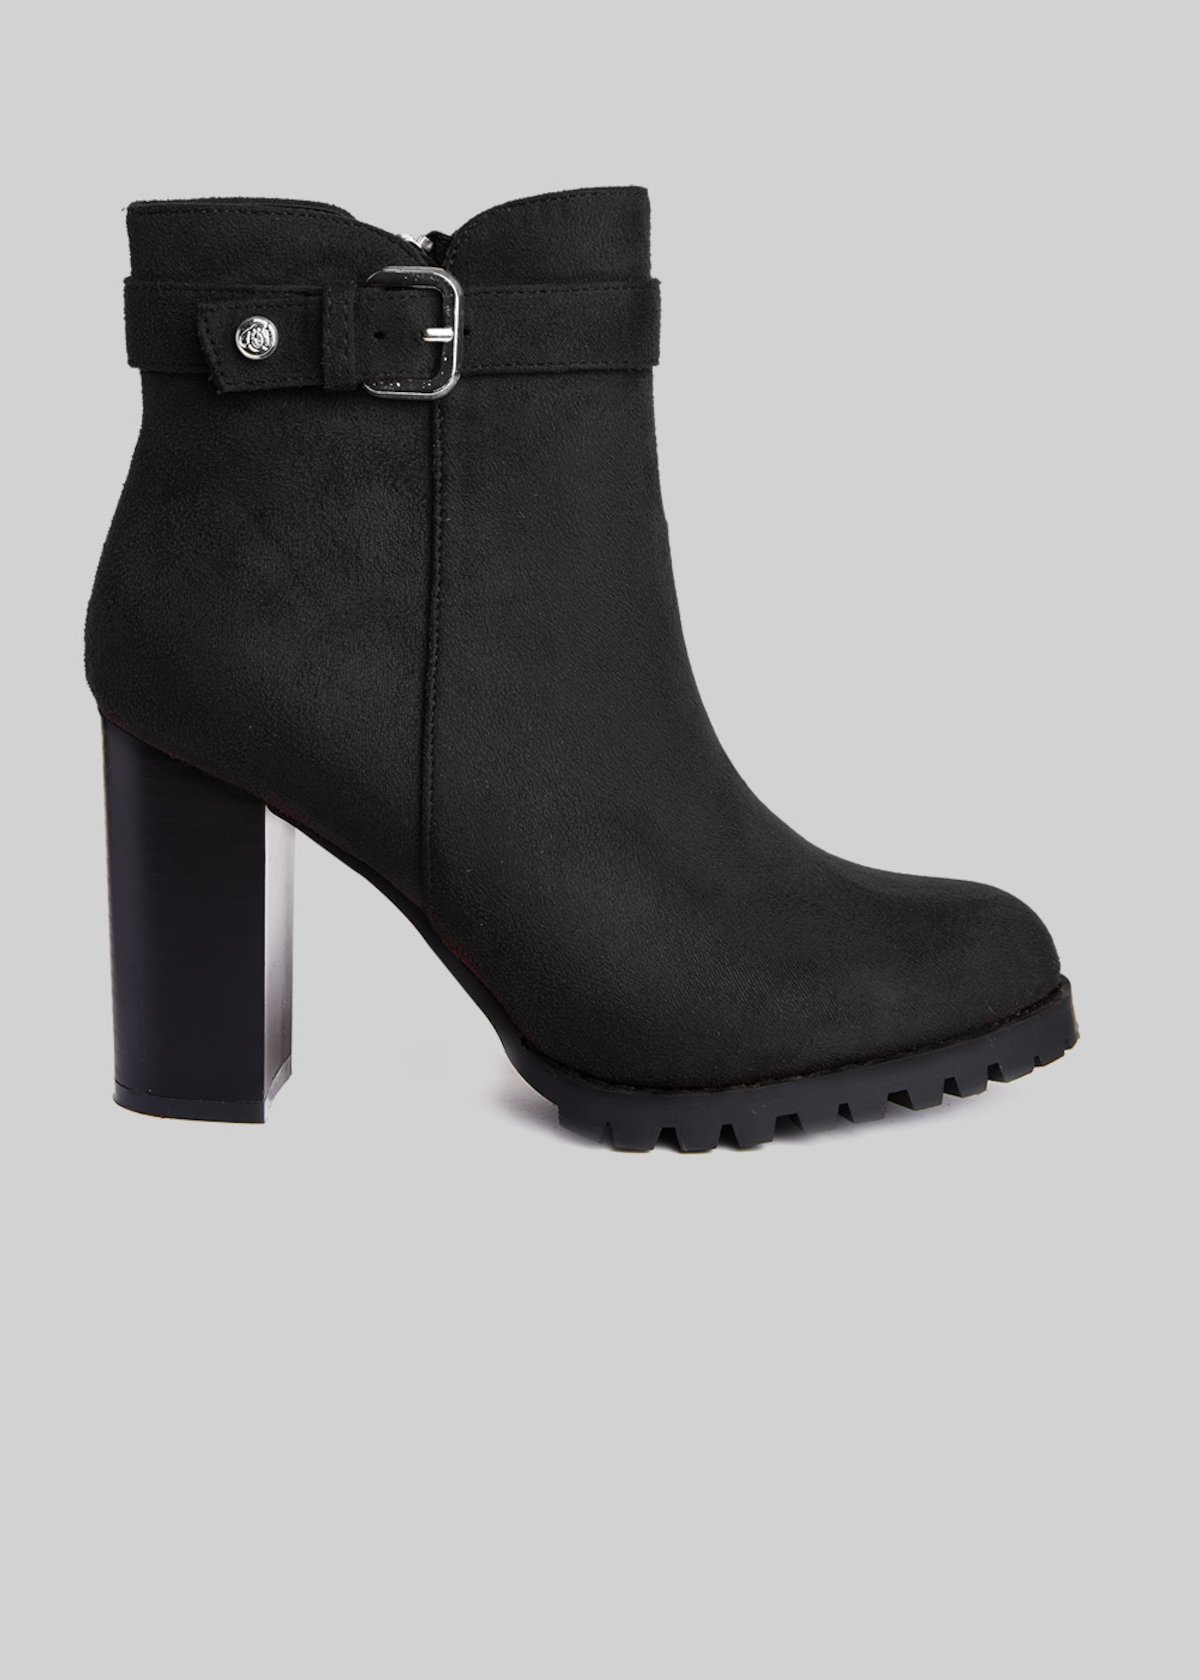 Shoma imitation Suede Ankle Boots with black heel - Black - Woman - Category image